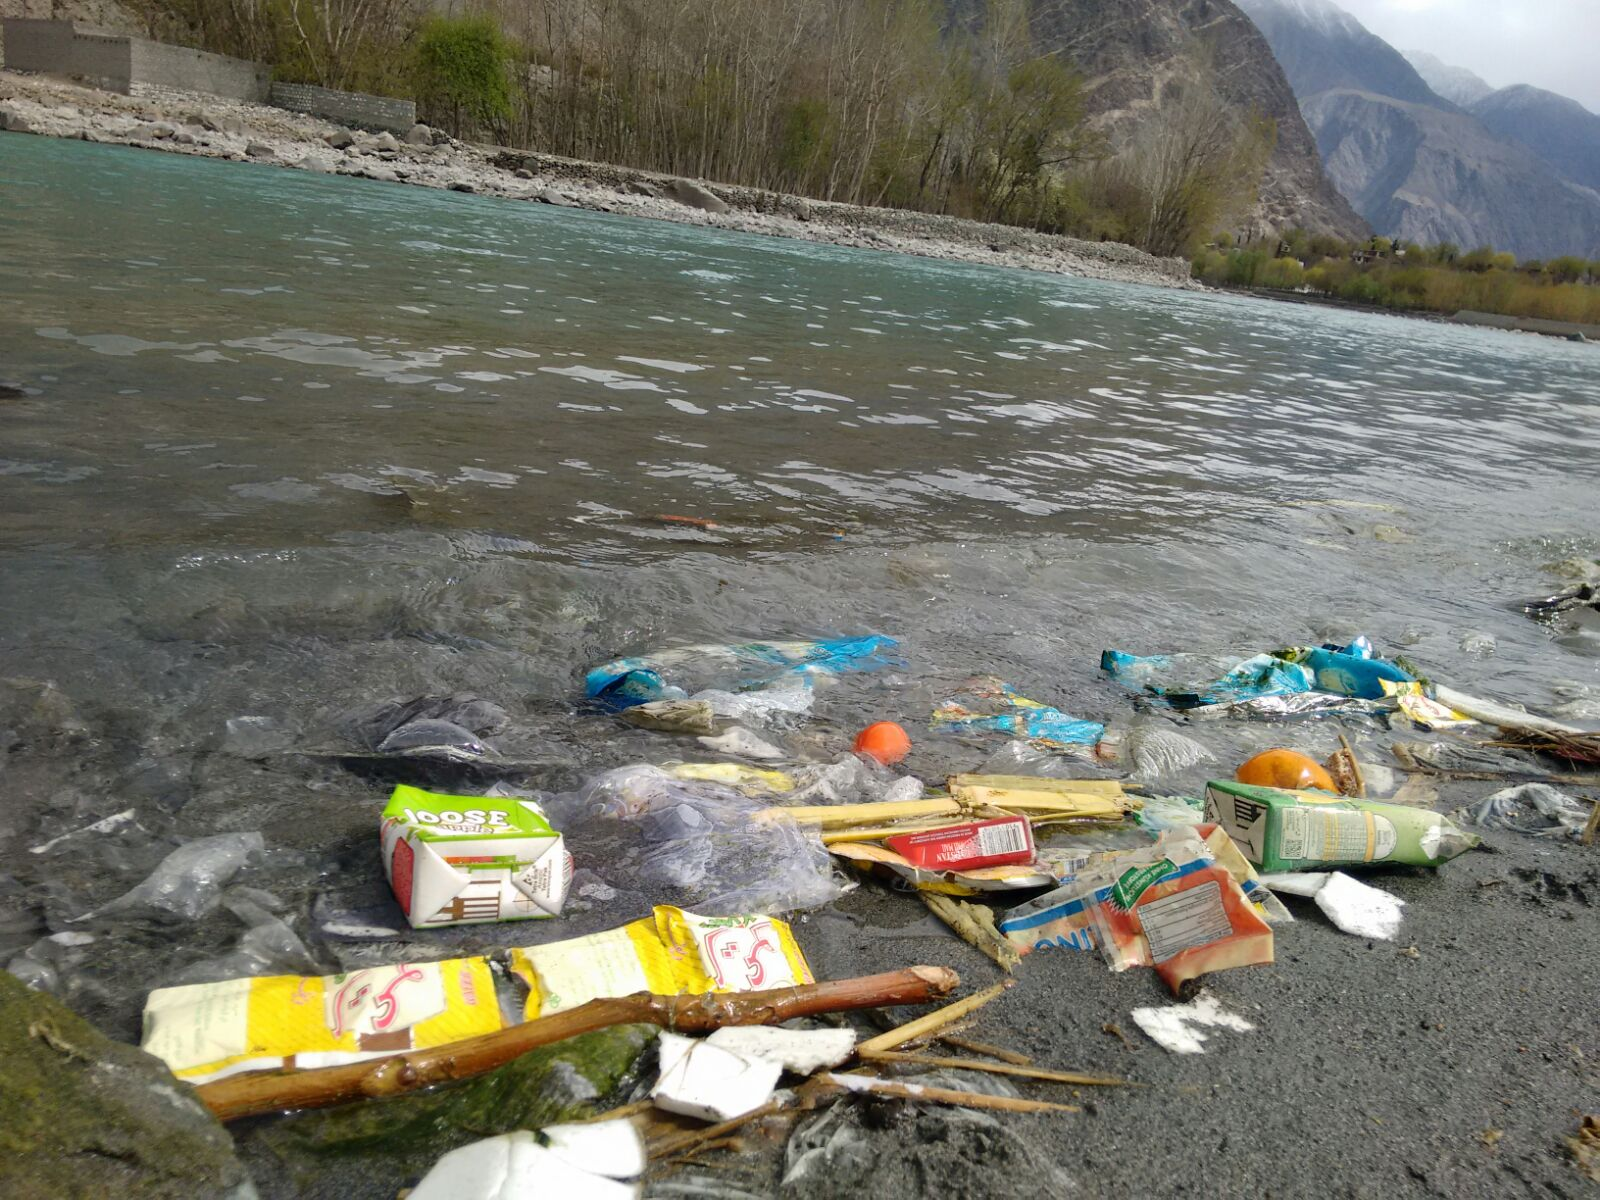 Gilgit River is getting polluted – Special report on International Day of Action for Rivers